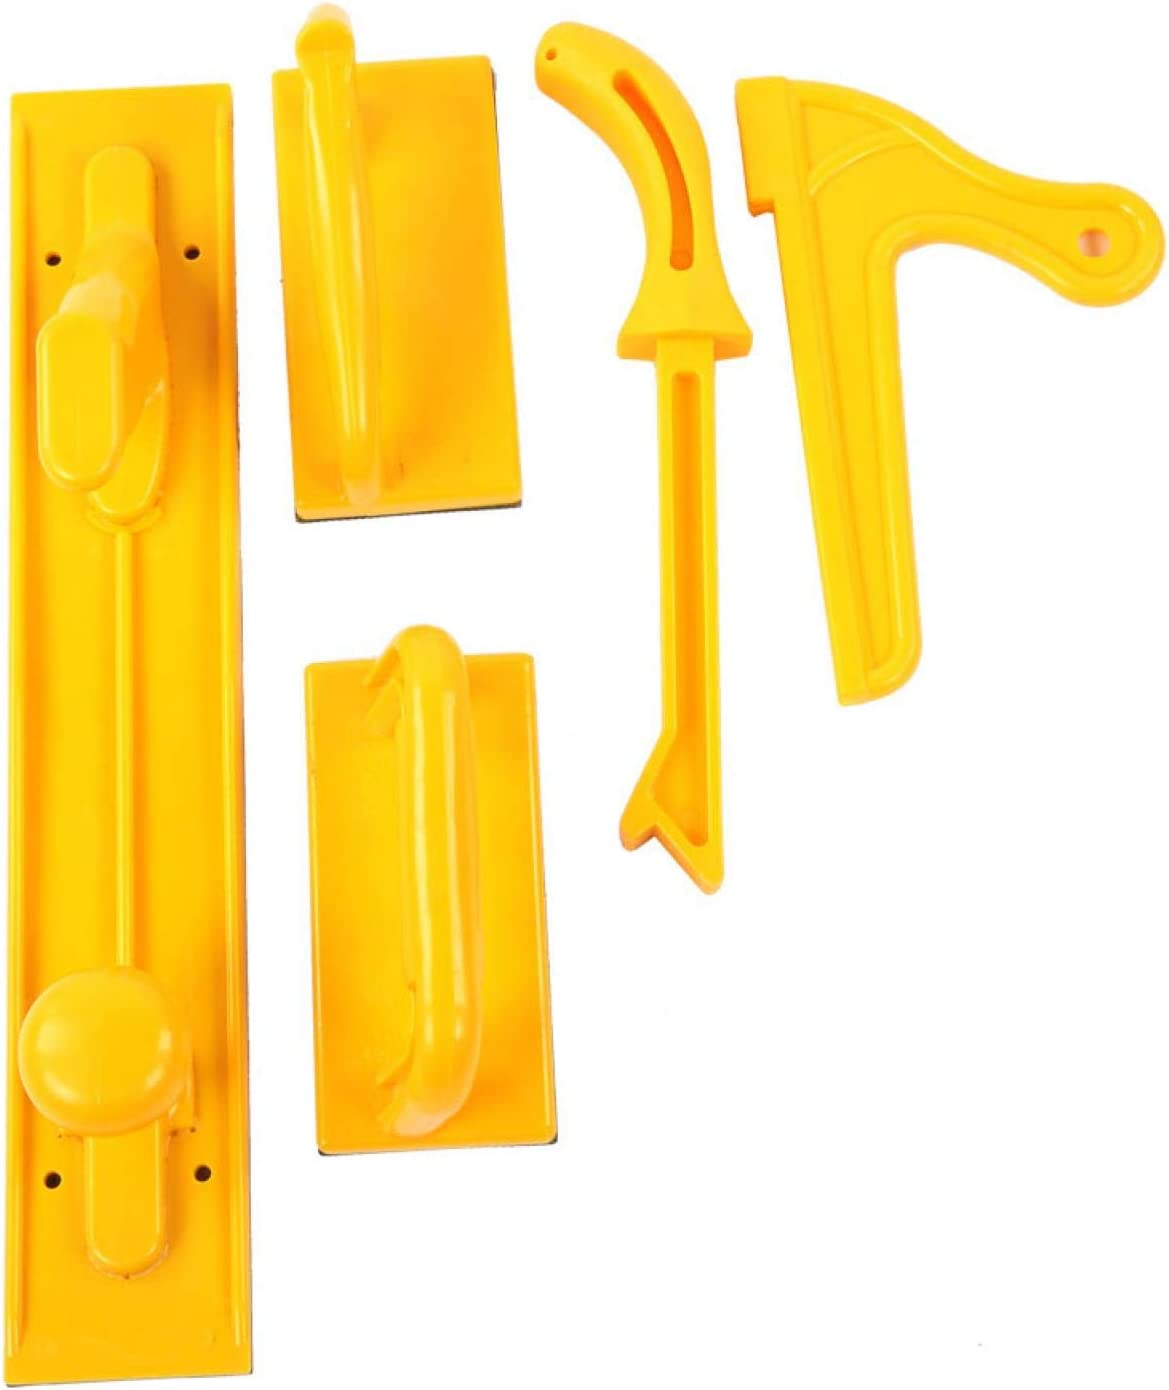 Max 72% OFF Safety Push Block Table Accessory Sti Max 77% OFF and Saw